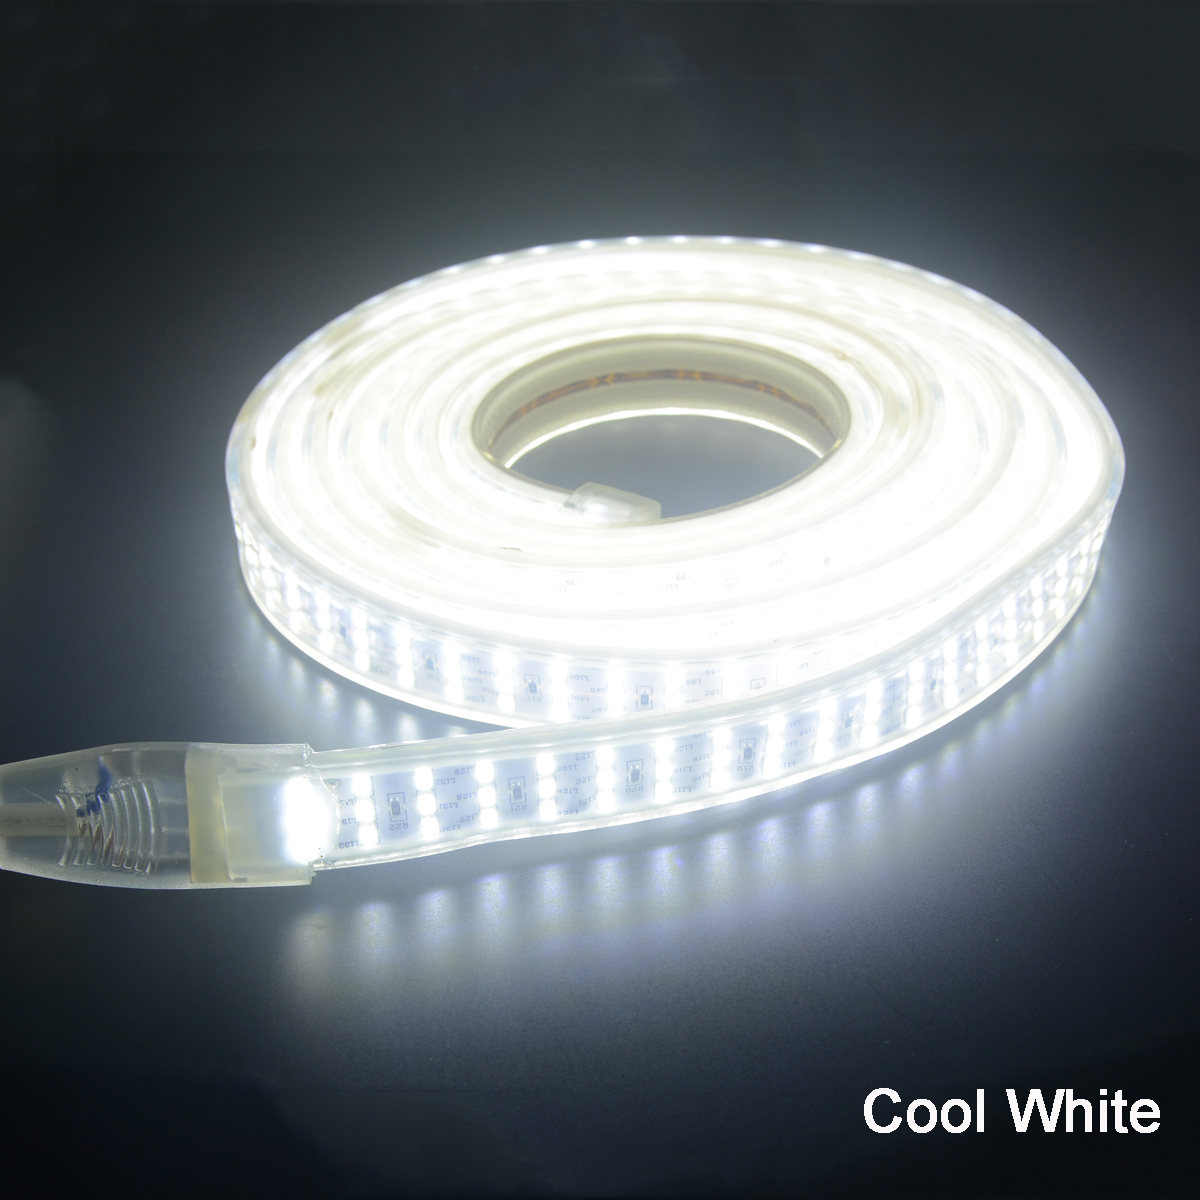 Led streifen Licht 220v SMD 2835 flexible band 276 leds/m 1m 2m 4m 5m 6m 7m 8m 9m + Power EU stecker